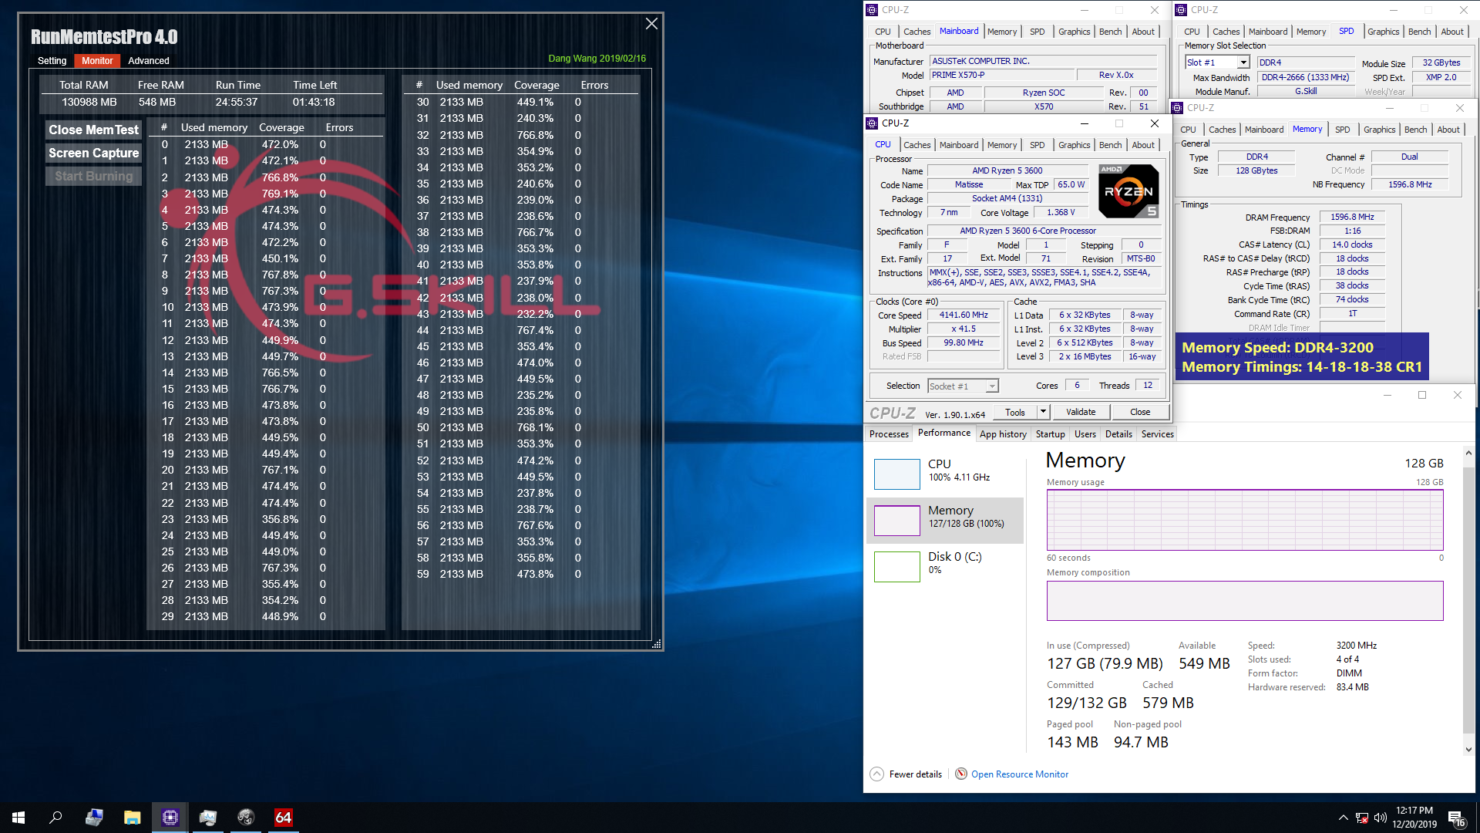 05-3200_c14-18-18-38_128gb_amd_x570_asus_24hrs